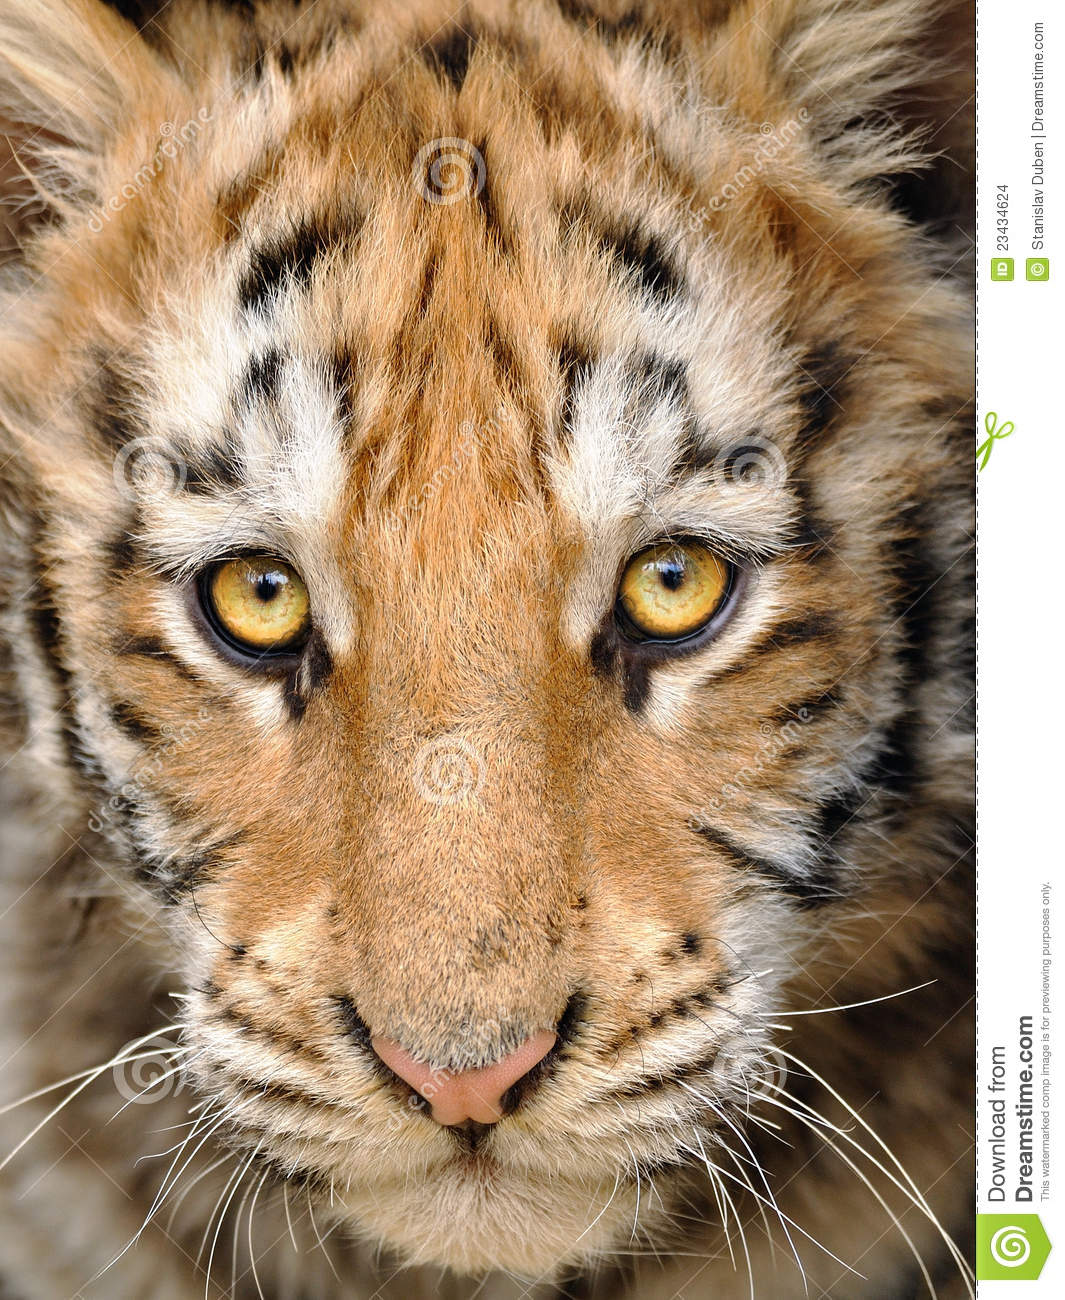 Baby tigers face - photo#21